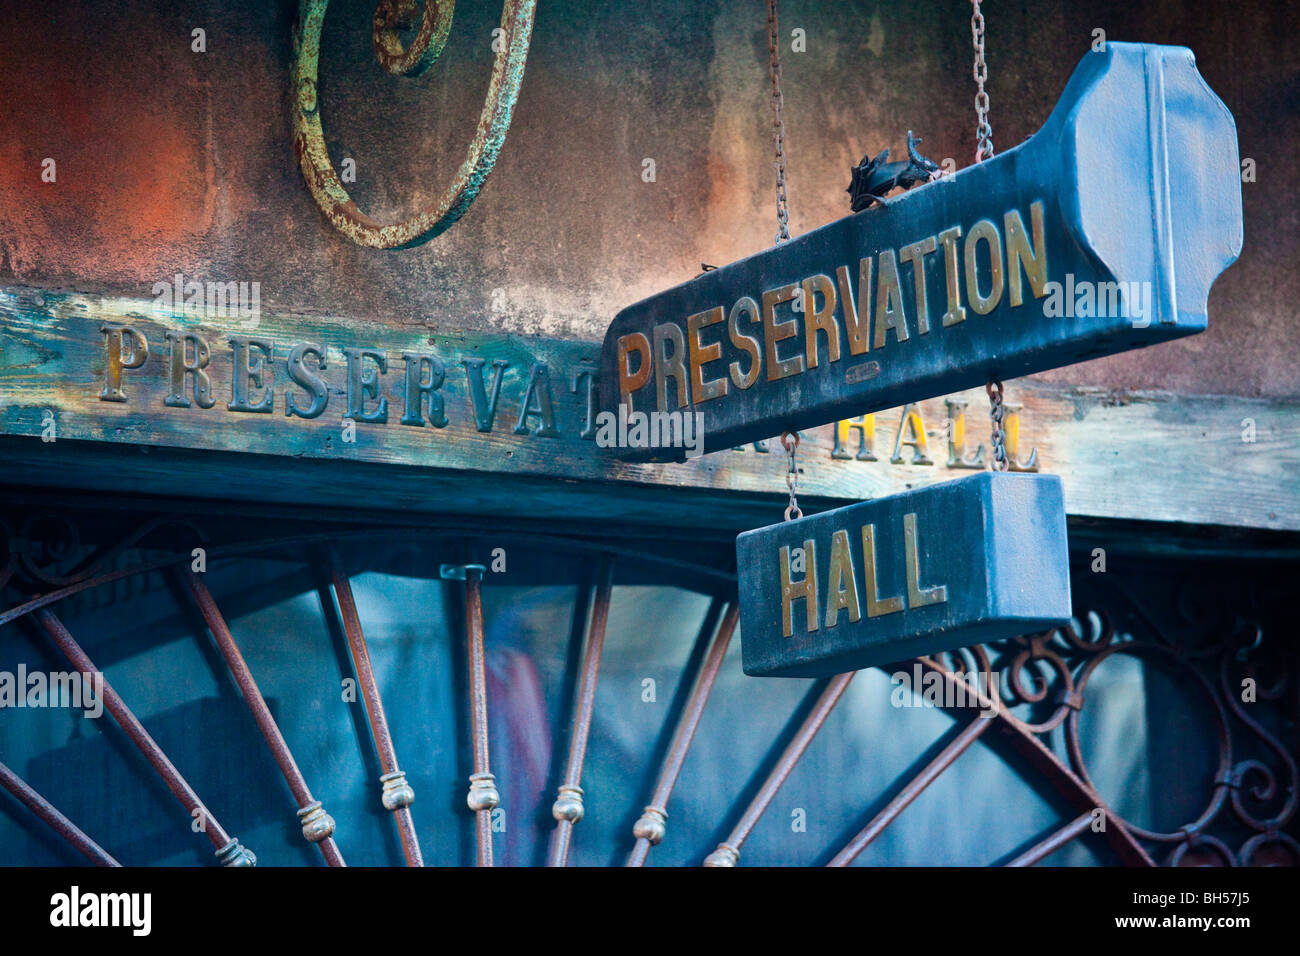 Preservation Hall Jazz Club in the French Quarter of New Orleans, LA - Stock Image